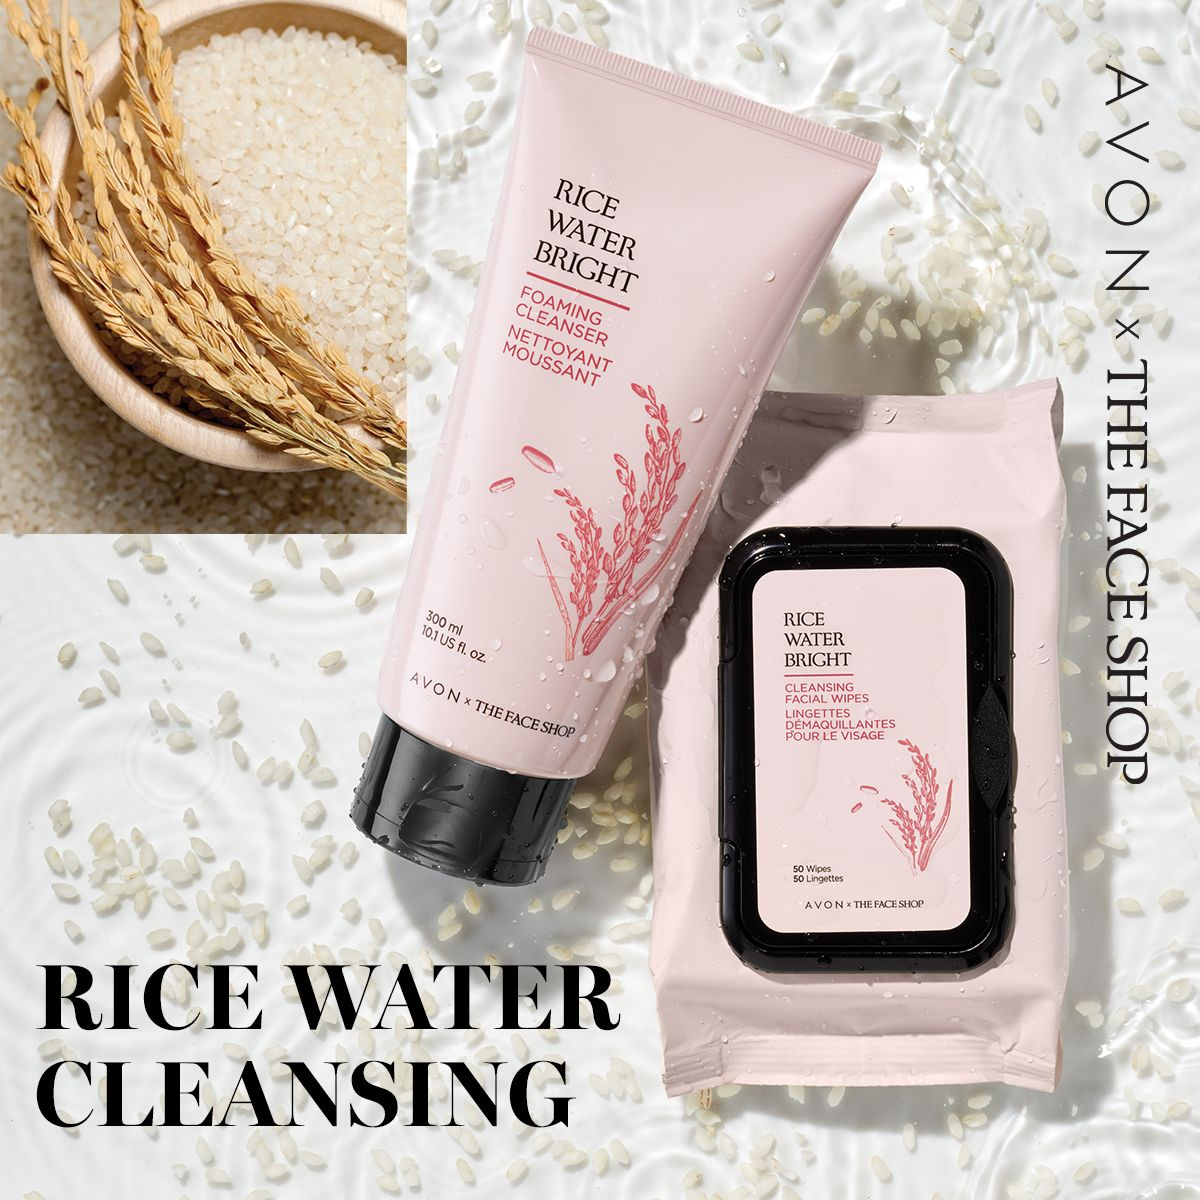 Rice Water Bright Foaming Cleanser in 2020 The face shop